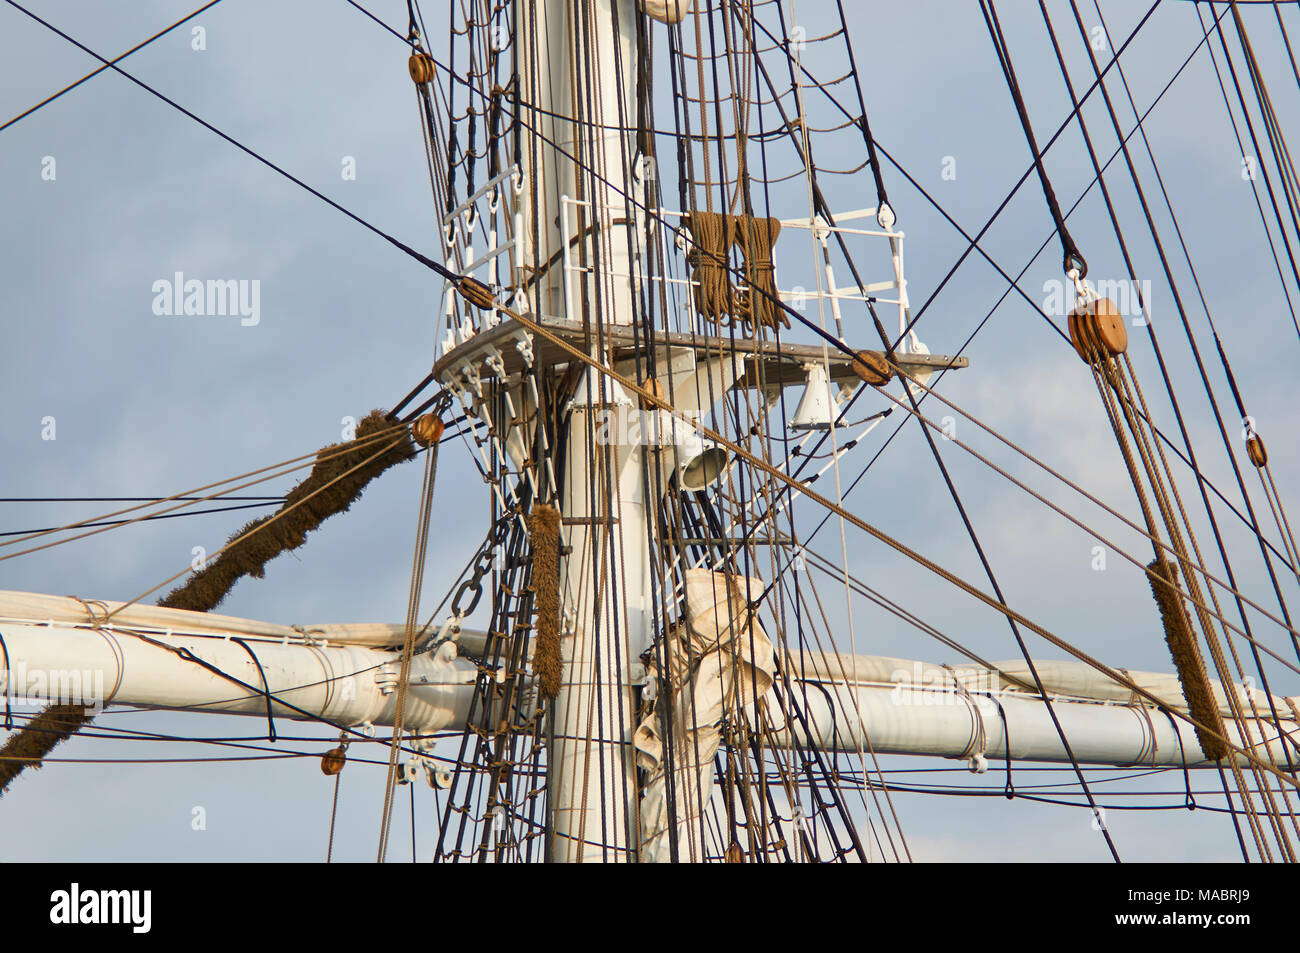 Detail of the Rigging of a Square Rigged Tall Ship Sailing Vessel moored in Bergen Harbour in Norway, Scandinavia. - Stock Image